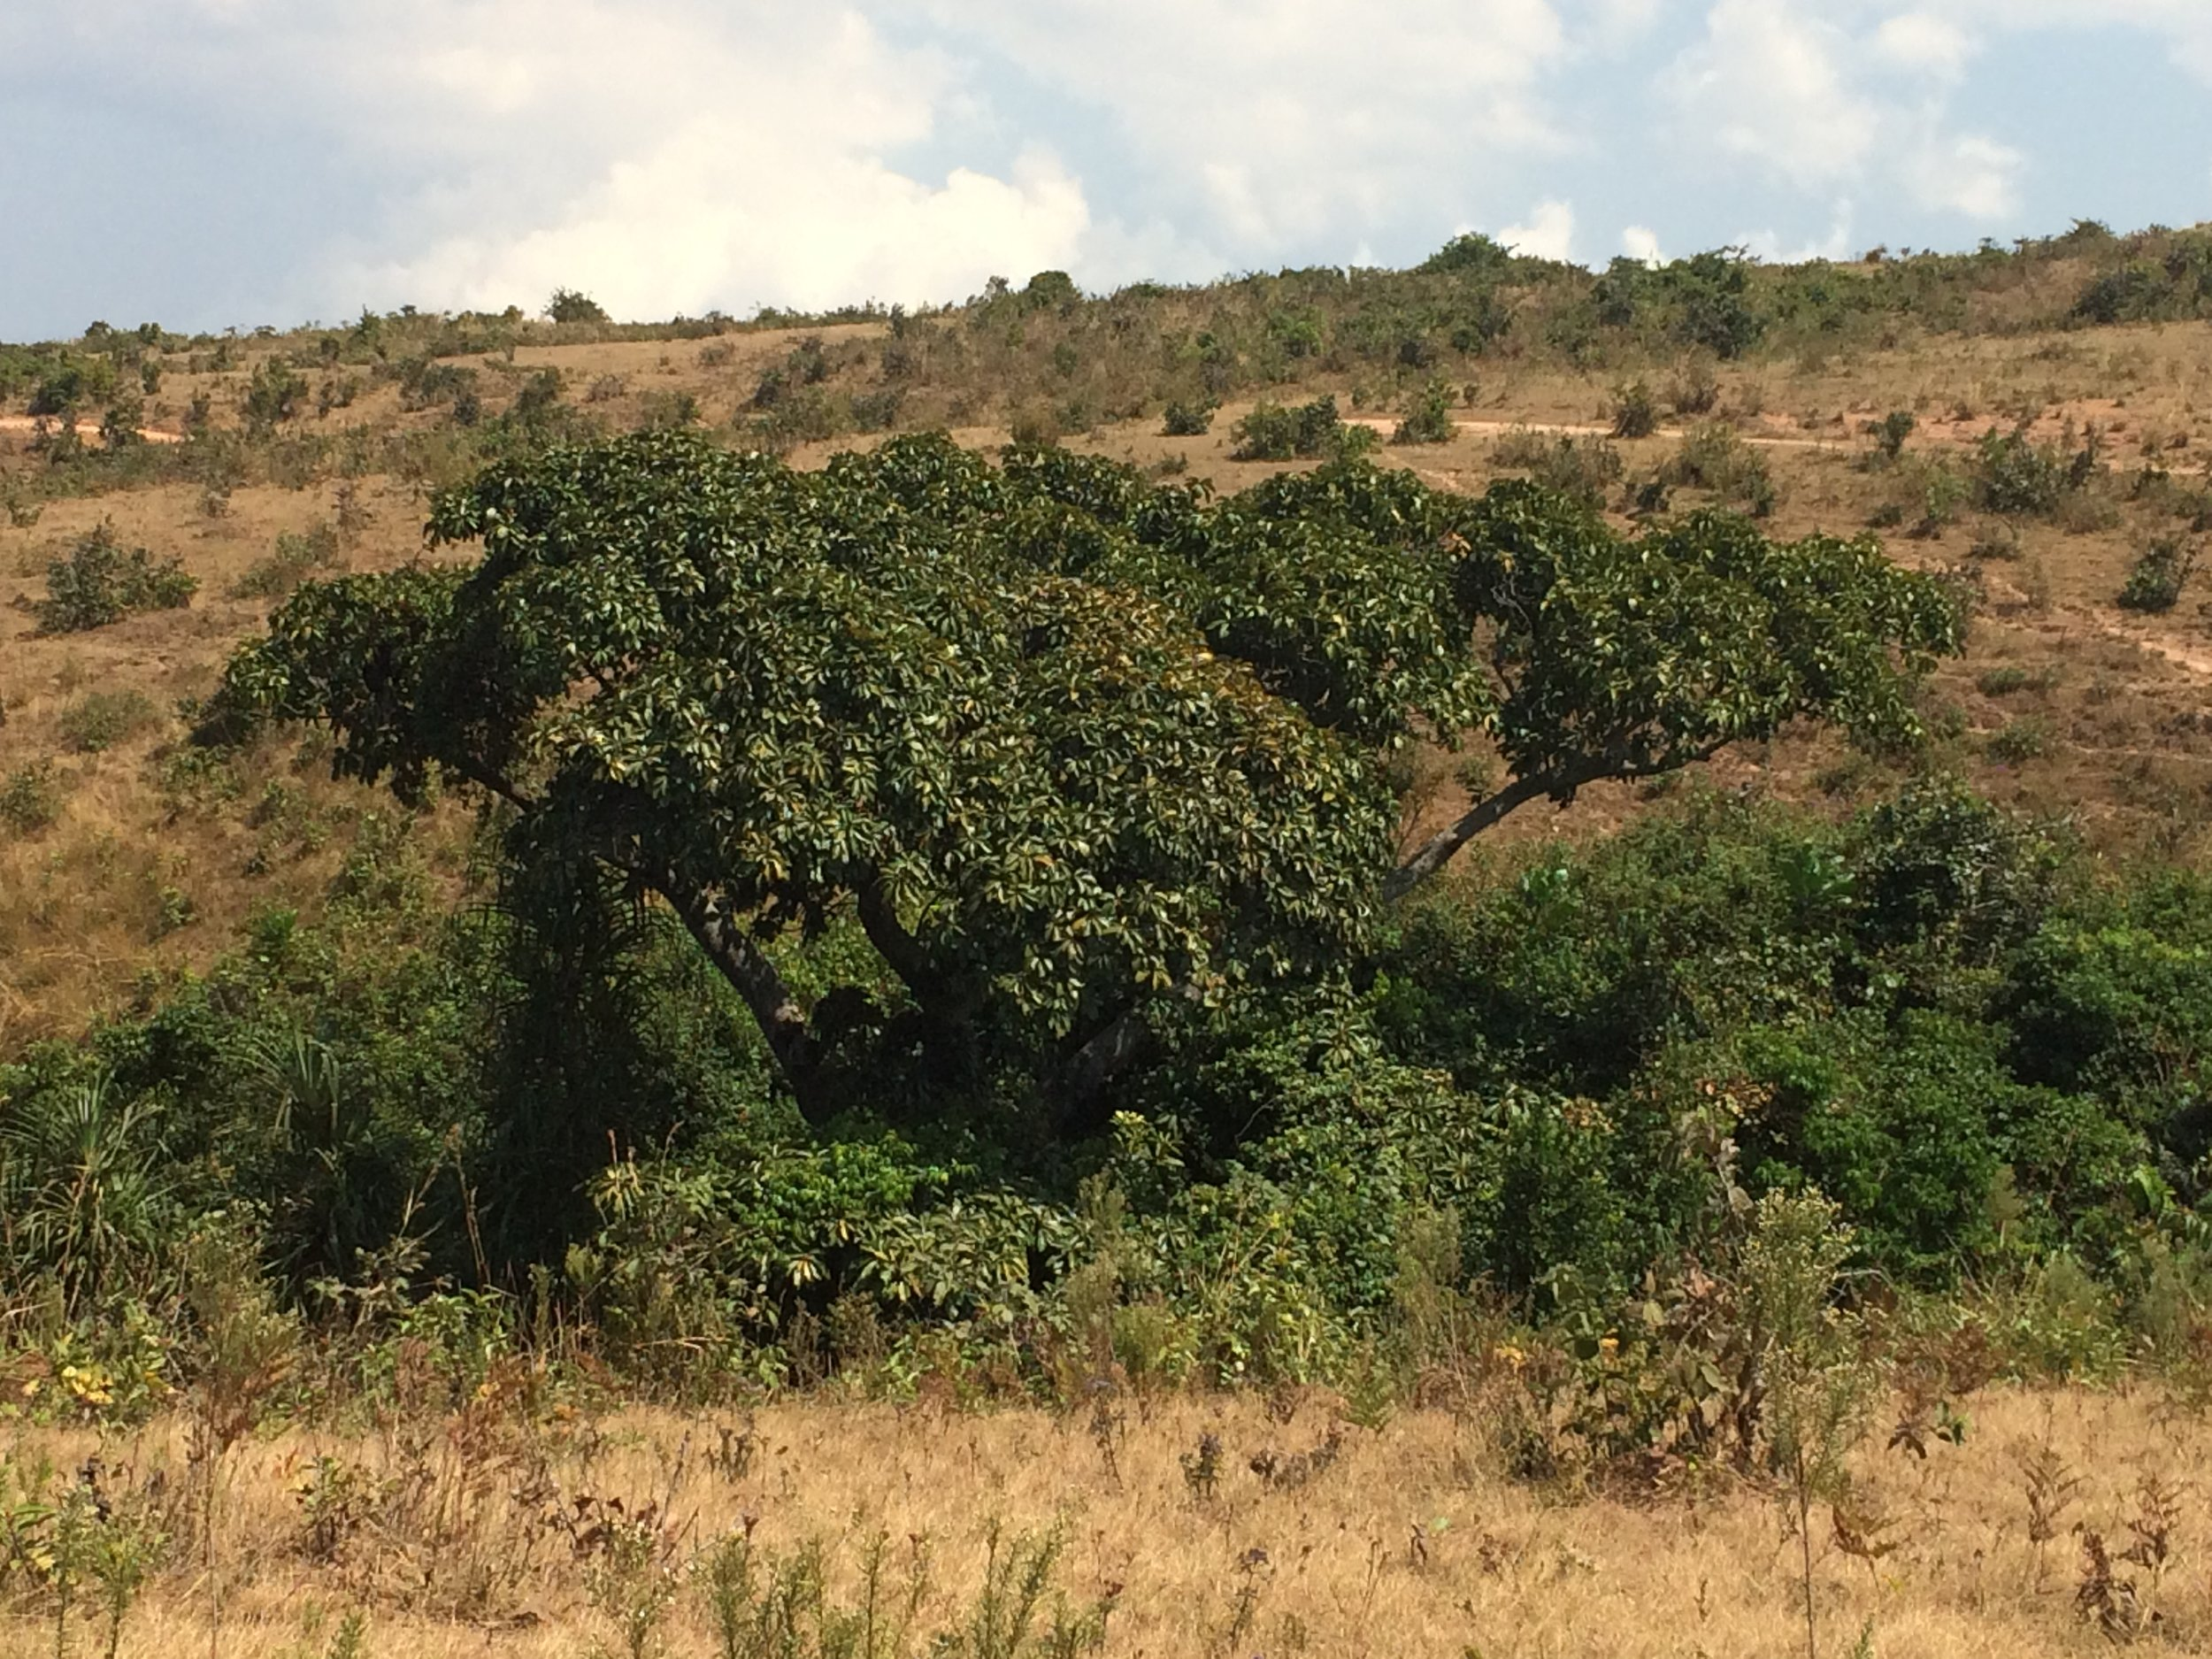 A sacred grove persisting amidst a deforested landscape in Tanzania